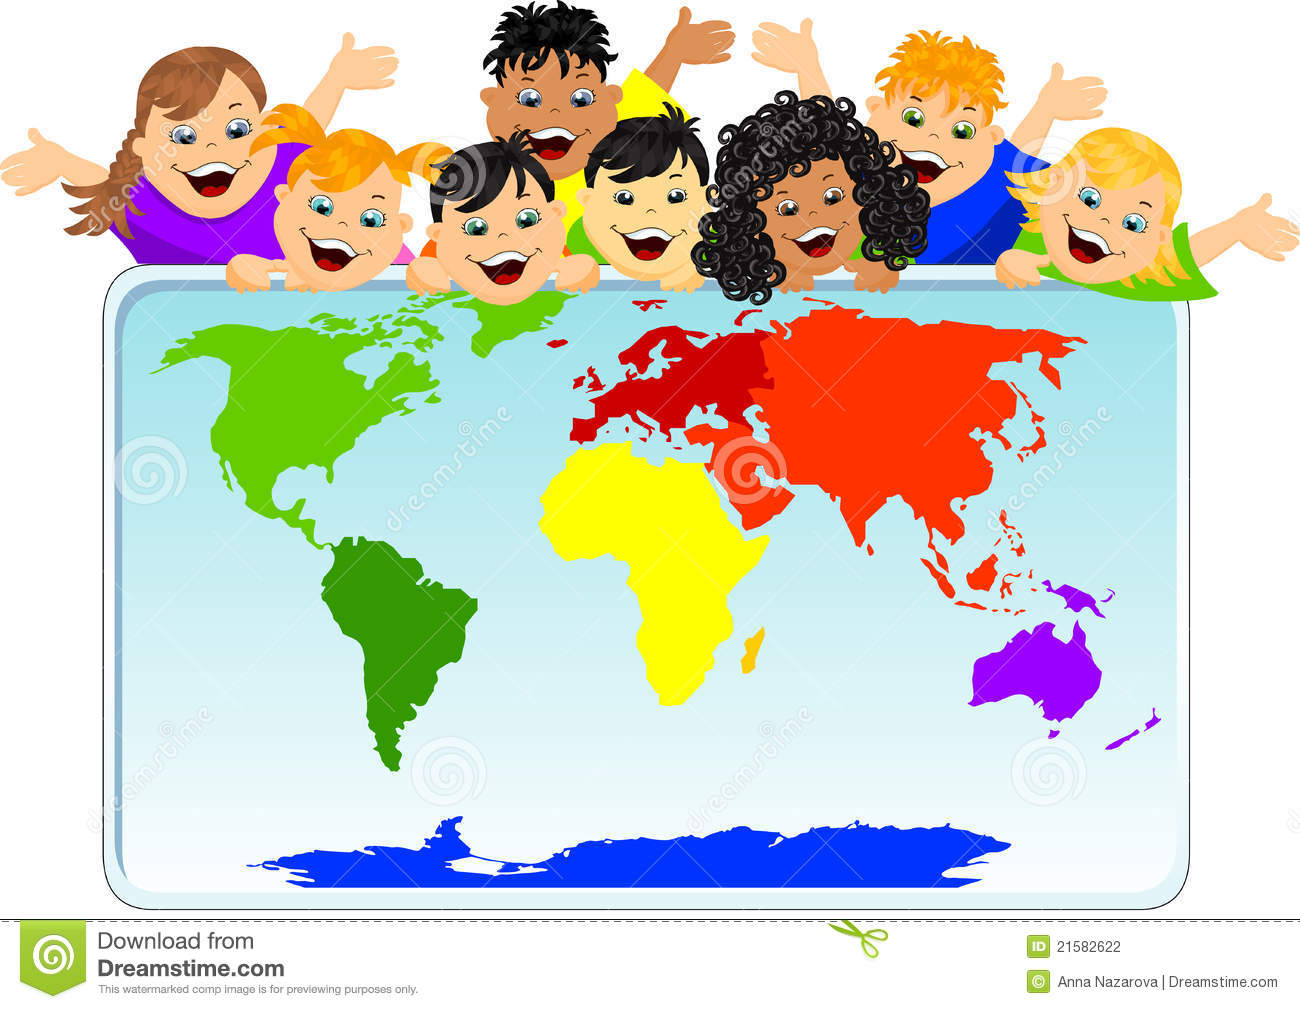 Children with a world map stock illustration illustration of children with a world map stock illustration illustration of smiling 21582622 gumiabroncs Image collections